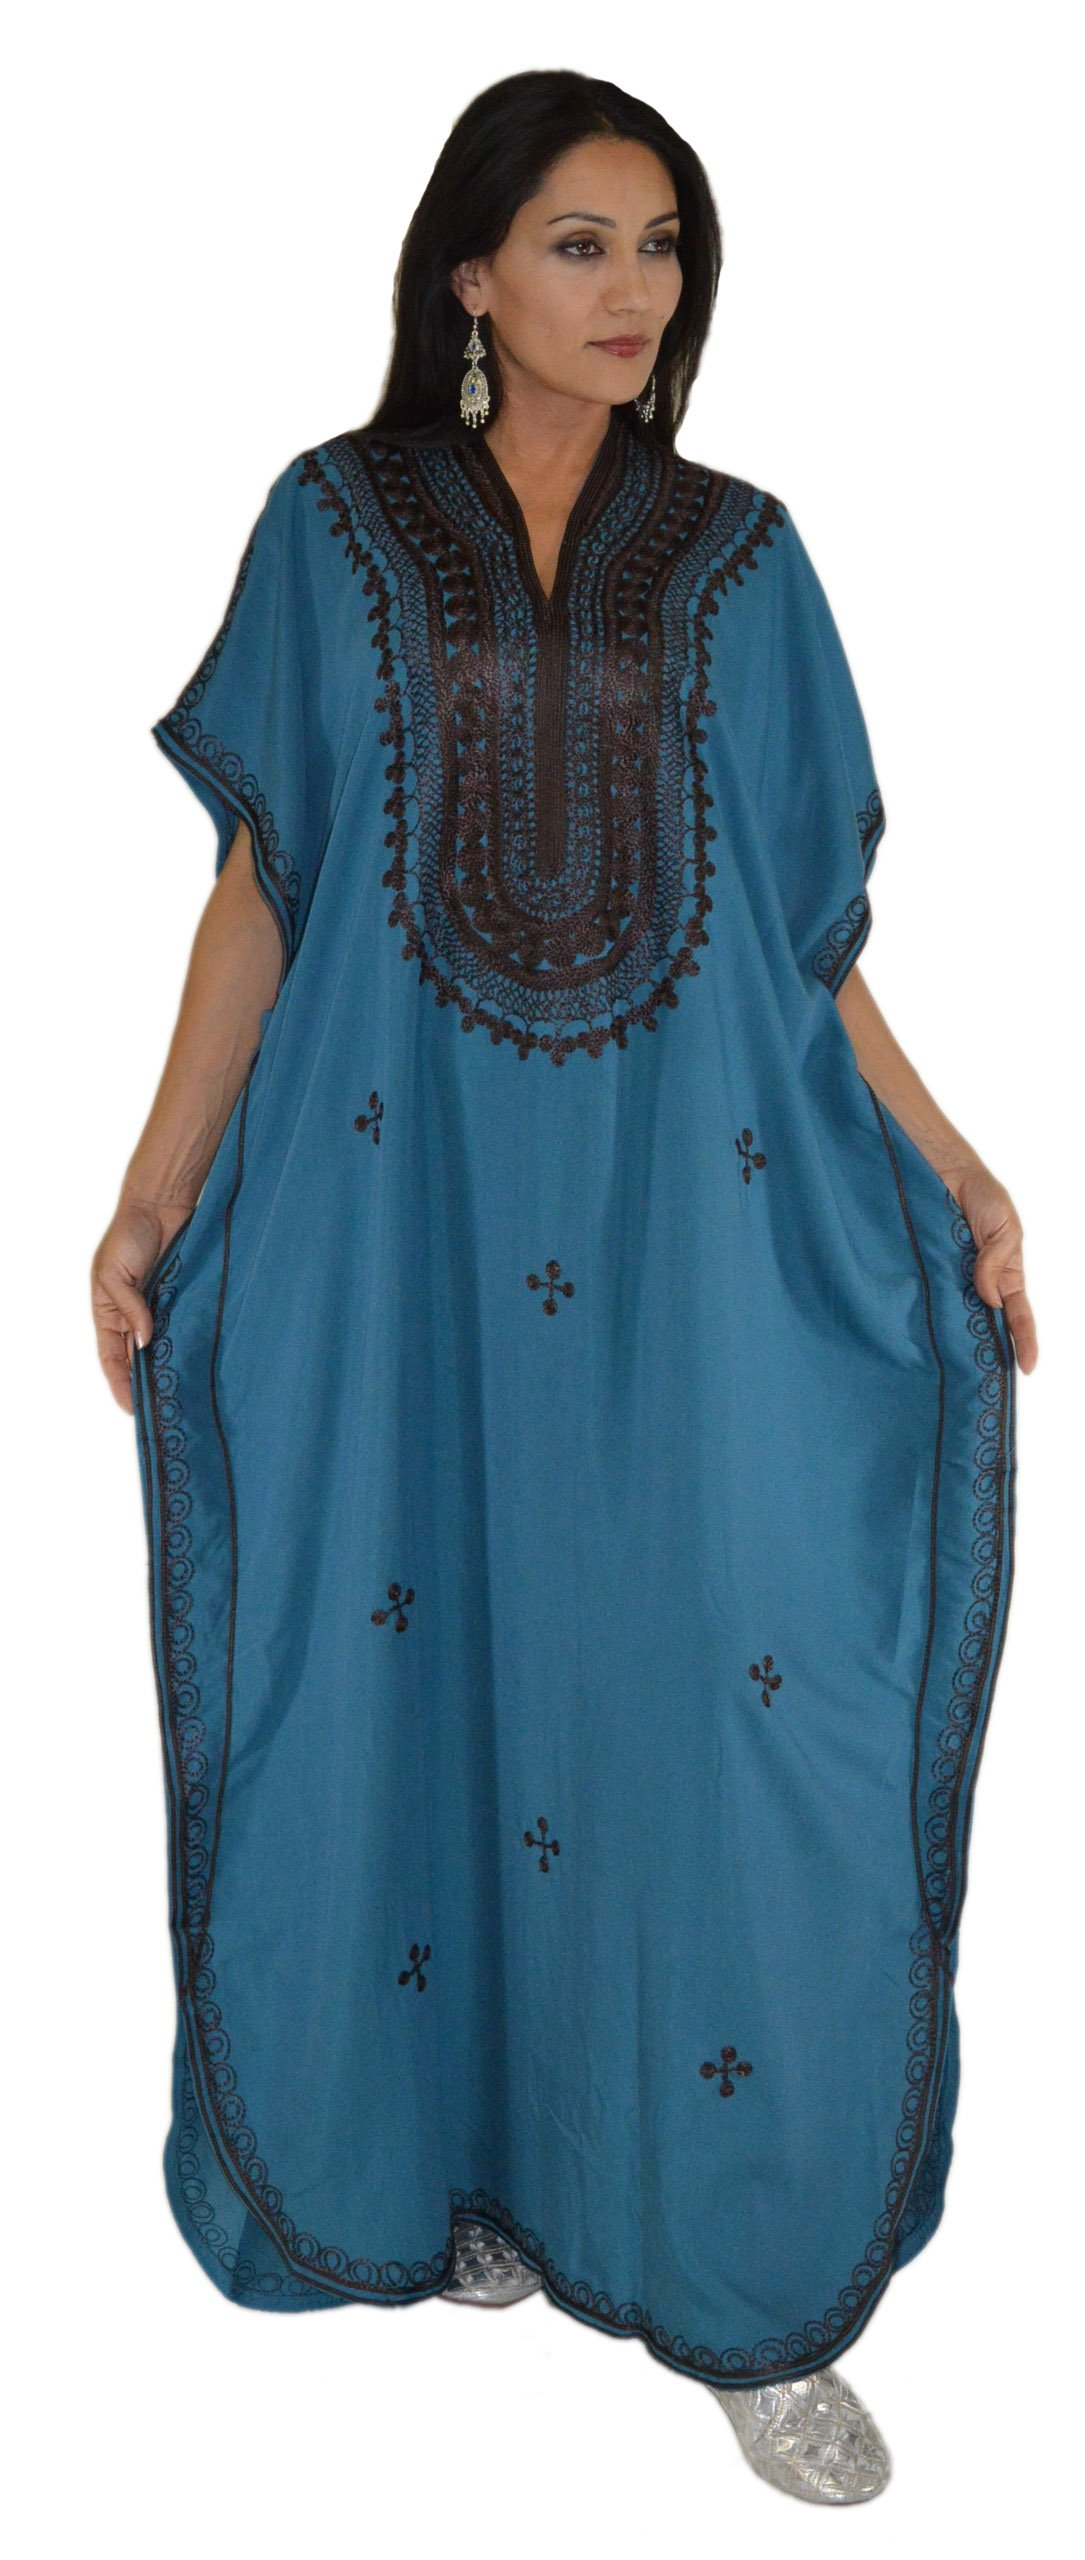 Moroccan Caftan Hand Made Top Quality Breathable Cotton with Brown Hand Embroidery Long Length Blue